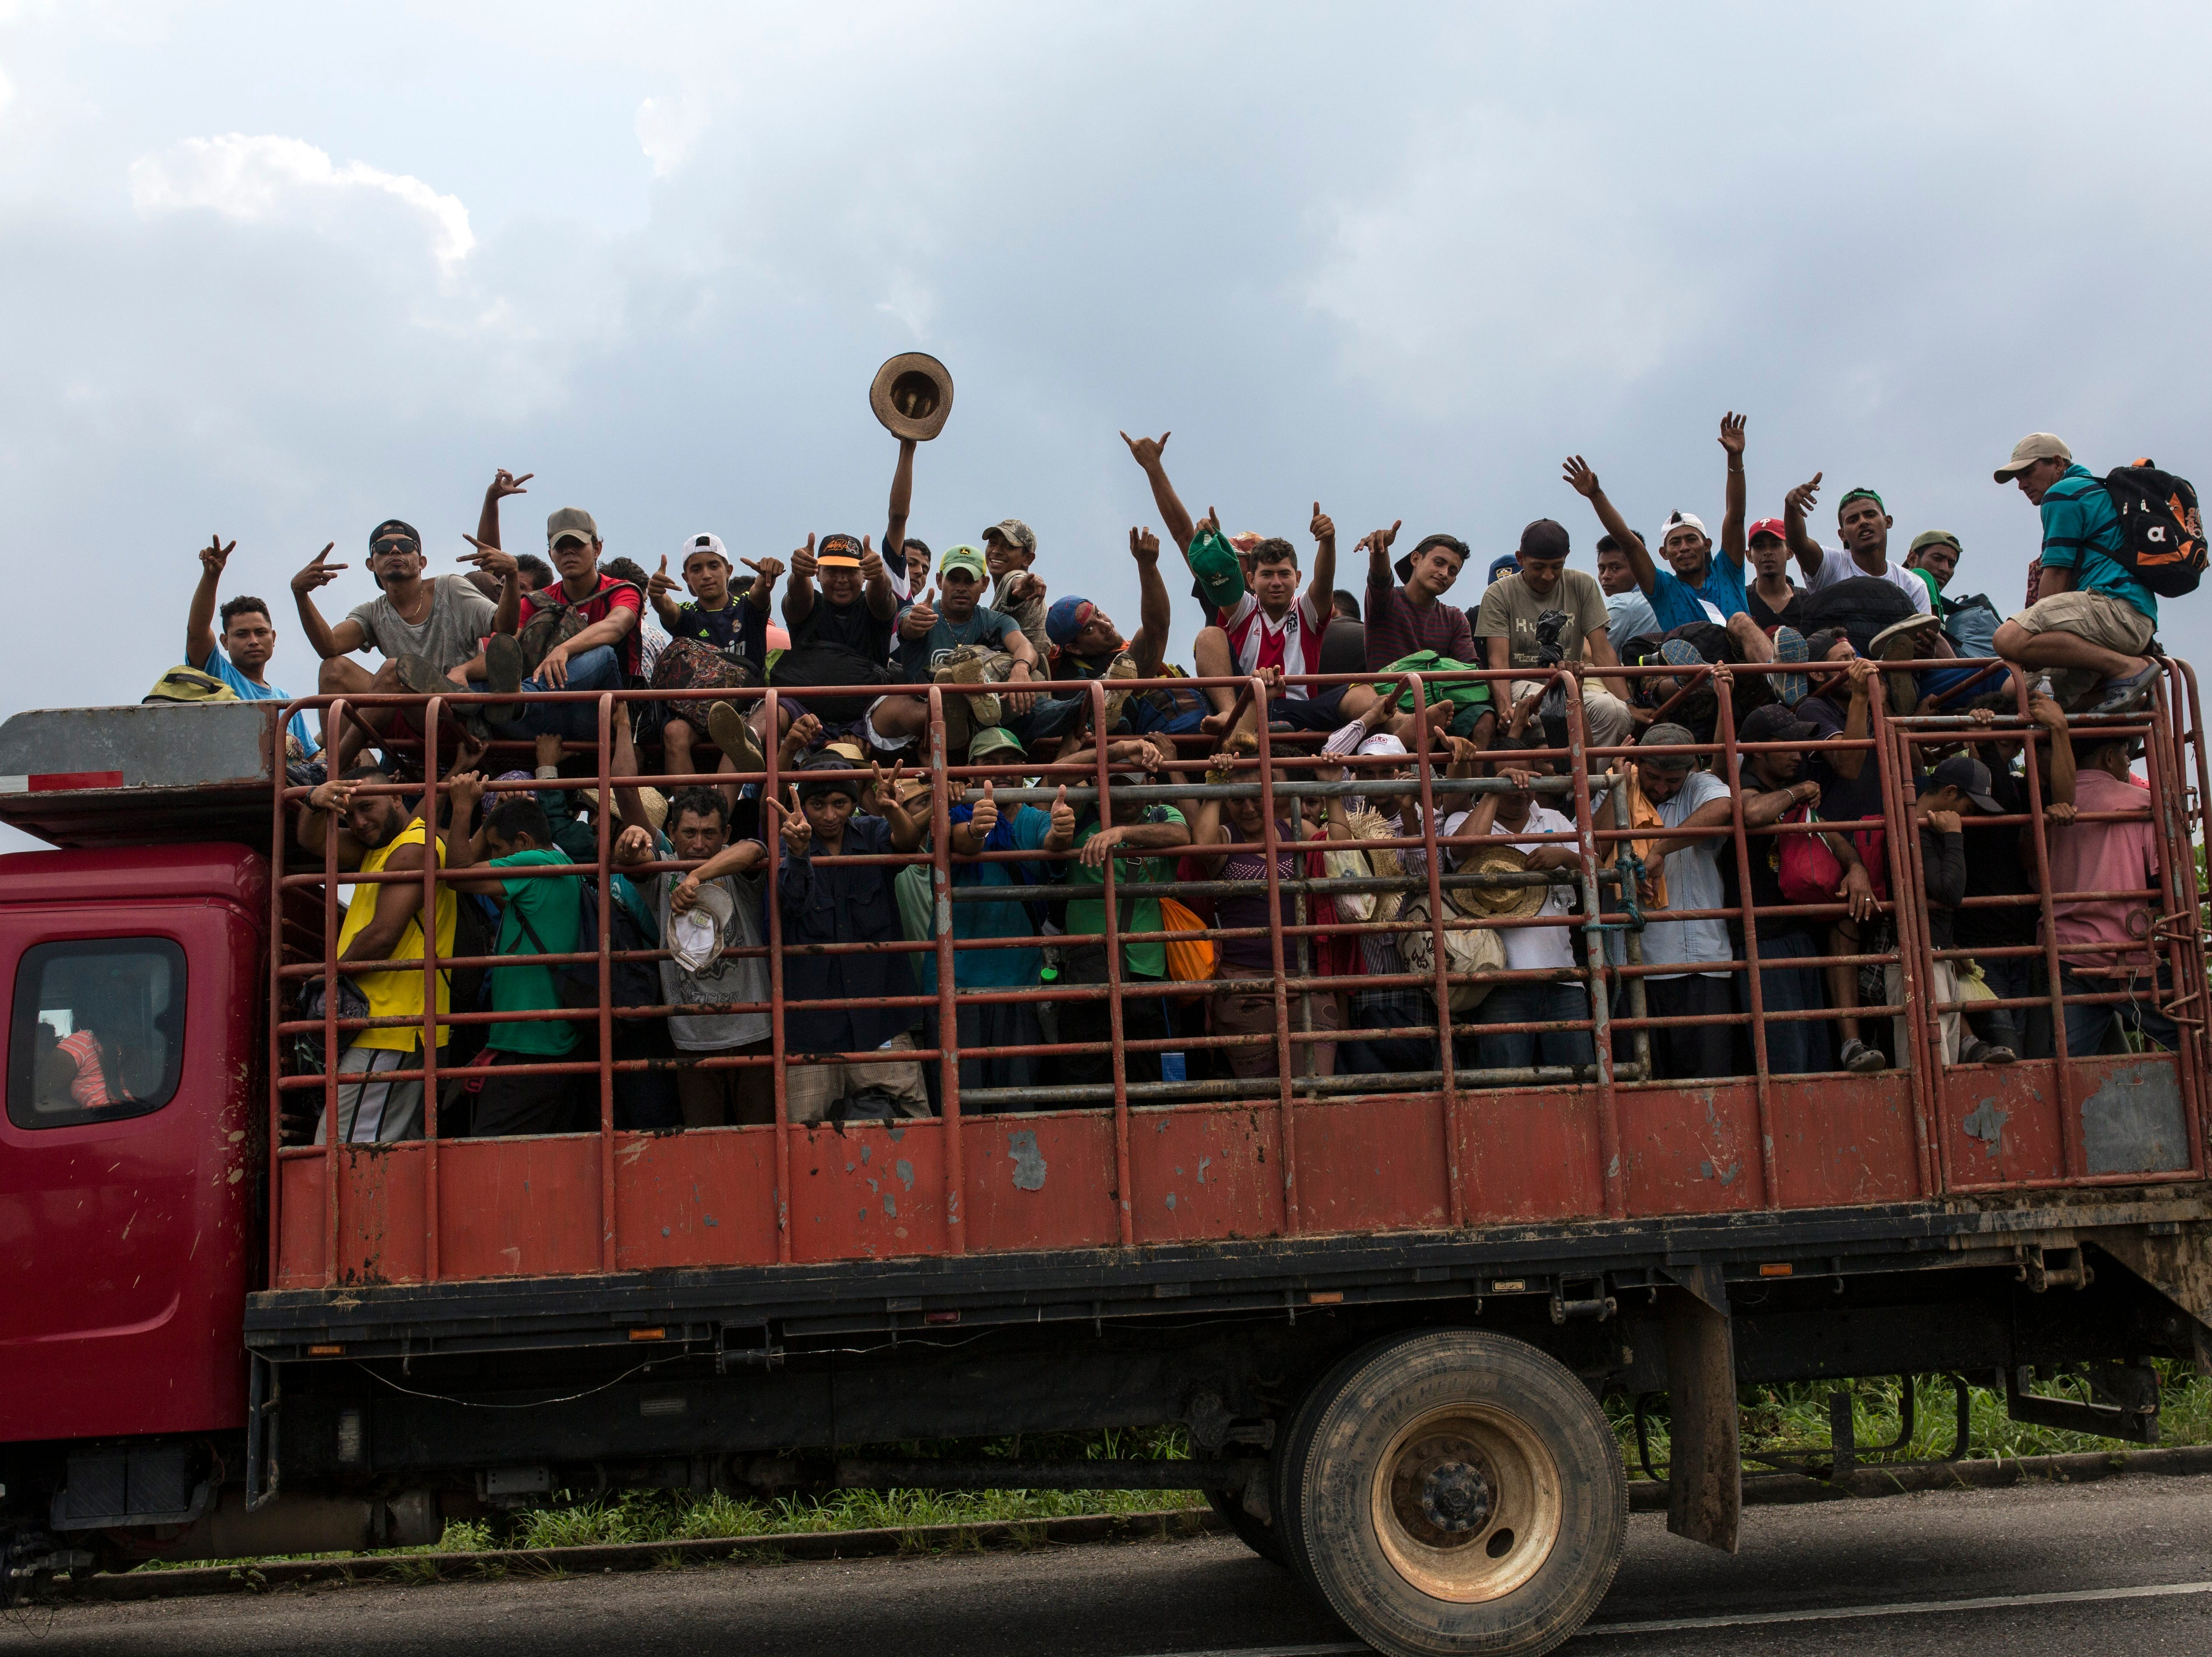 Central American migrants, part of the caravan hoping to reach the U.S. border, get a ride on a truck in Donaji, Oaxaca state, Mexico, Friday, Nov. 2, 2018. The migrants had already made a grueling 40-mile trek from Juchitan, Oaxaca, on Thursday, after they failed to get the bus transportation they had hoped for. But hitching rides allowed them to get to Donaji early, and some headed on to a town even further north, Sayula.